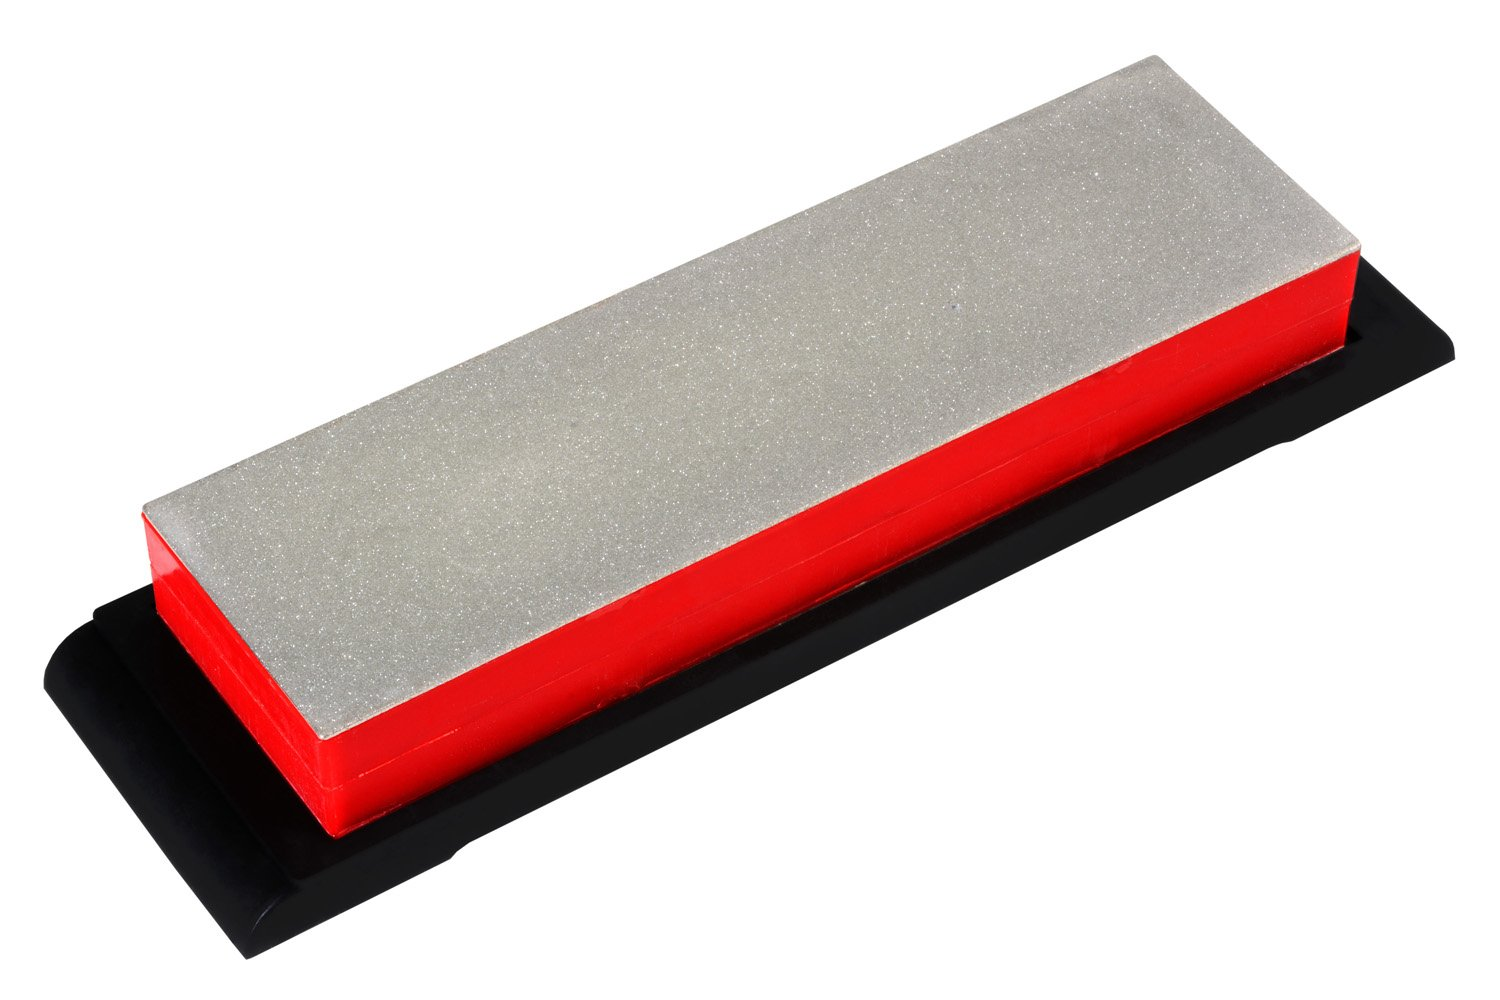 Ansen Tools AS-442 Grit Sharp 8 5//8-Inch Double Sided Diamond Whetstone Sharpener Extra Coarse//Coarse with a Non-Skid Rubber Base